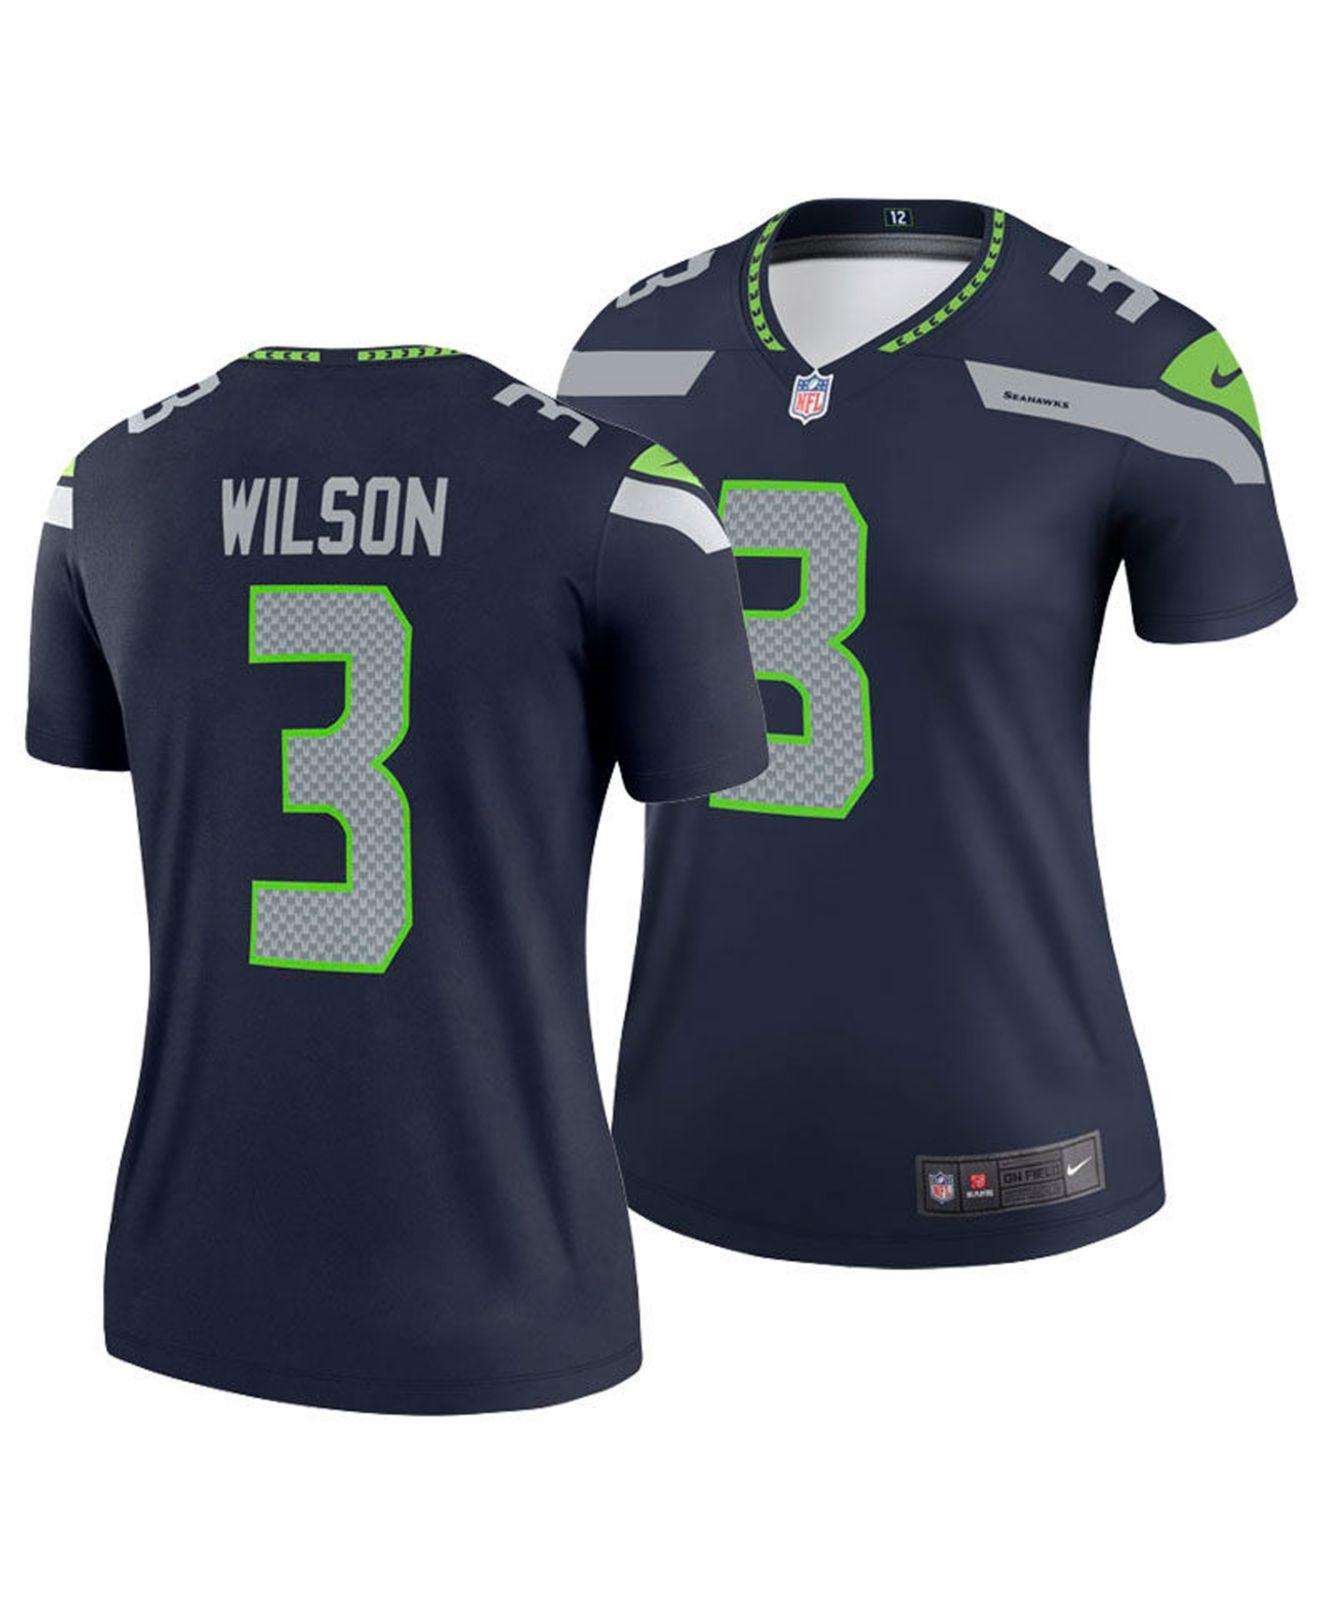 reputable site 4a111 a255d Lyst - Nike Russell Wilson Seattle Seahawks Legend Jersey in ...